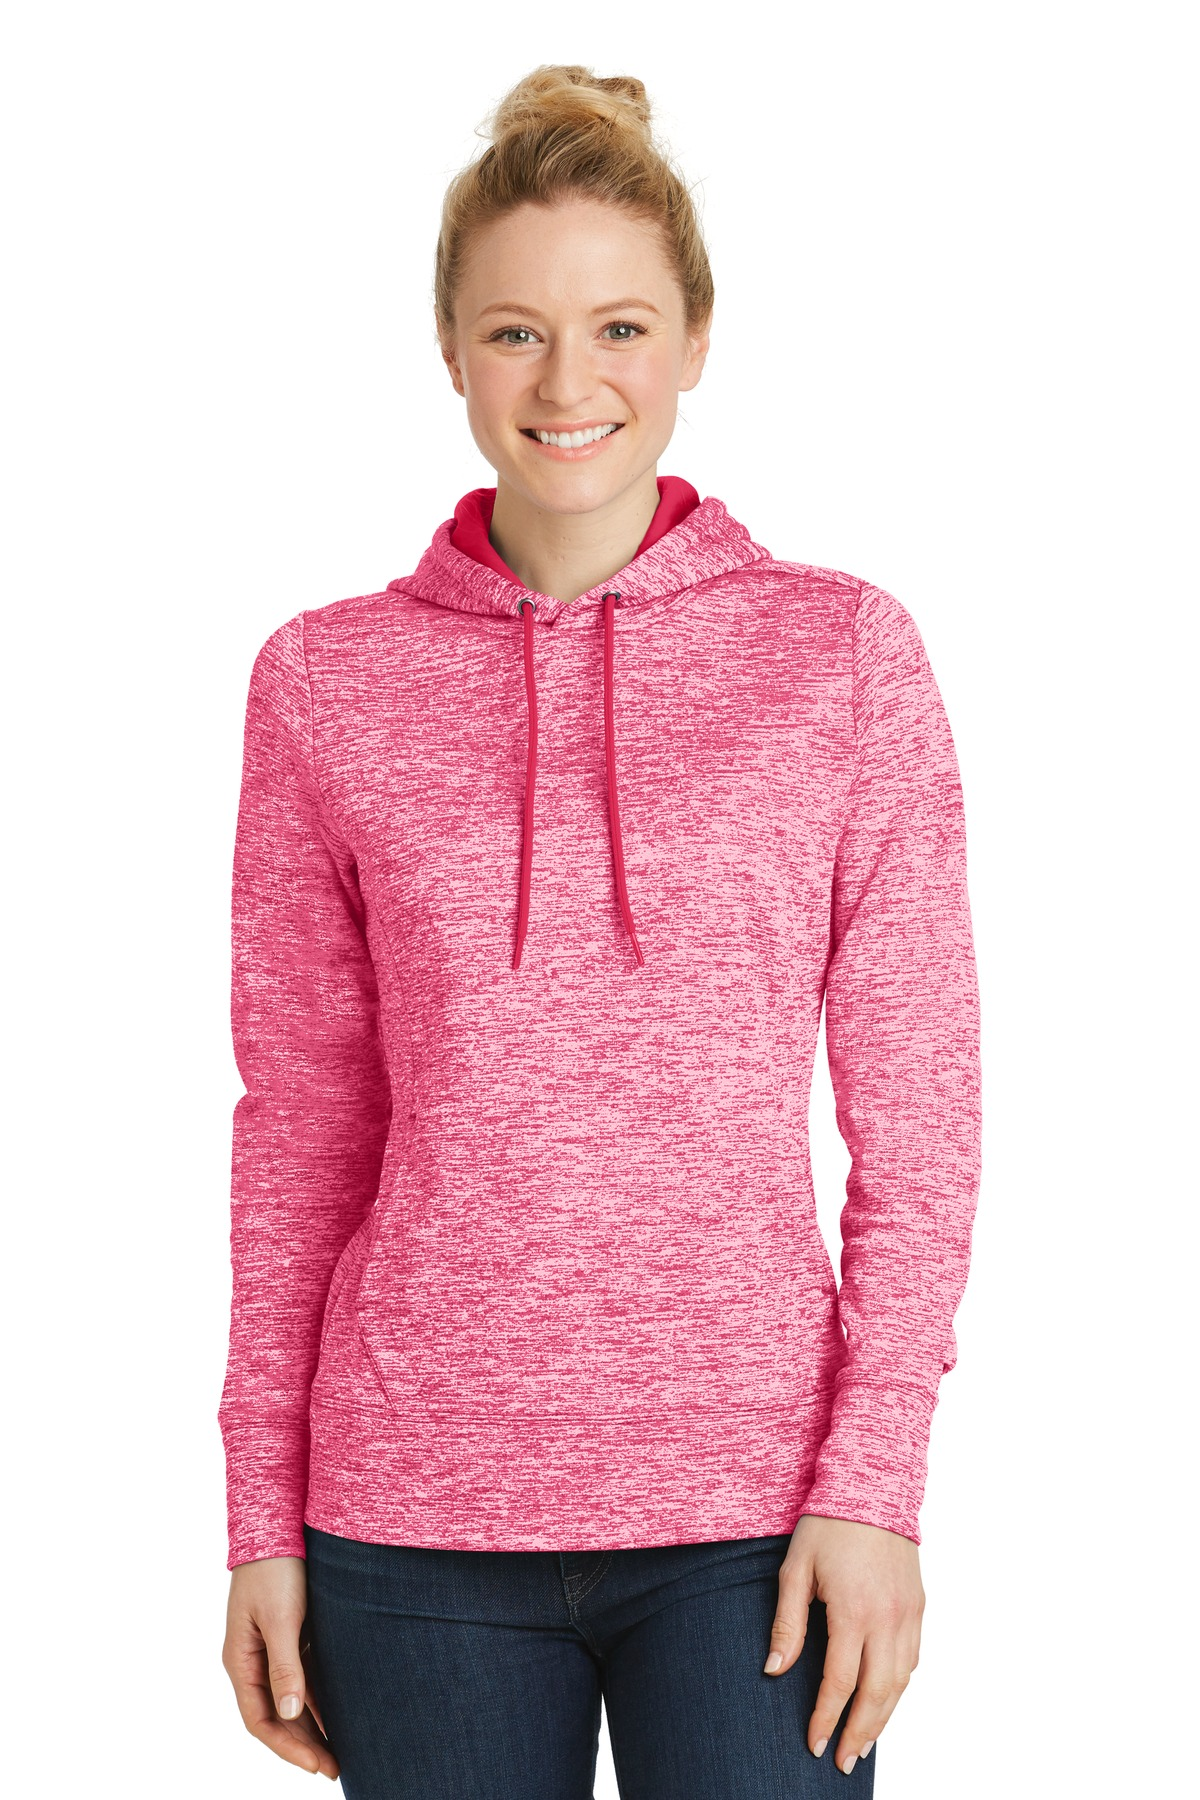 Sport-Tek ®  Ladies PosiCharge ®  Electric Heather Fleece Hooded Pullover. LST225 - Power Pink Electric